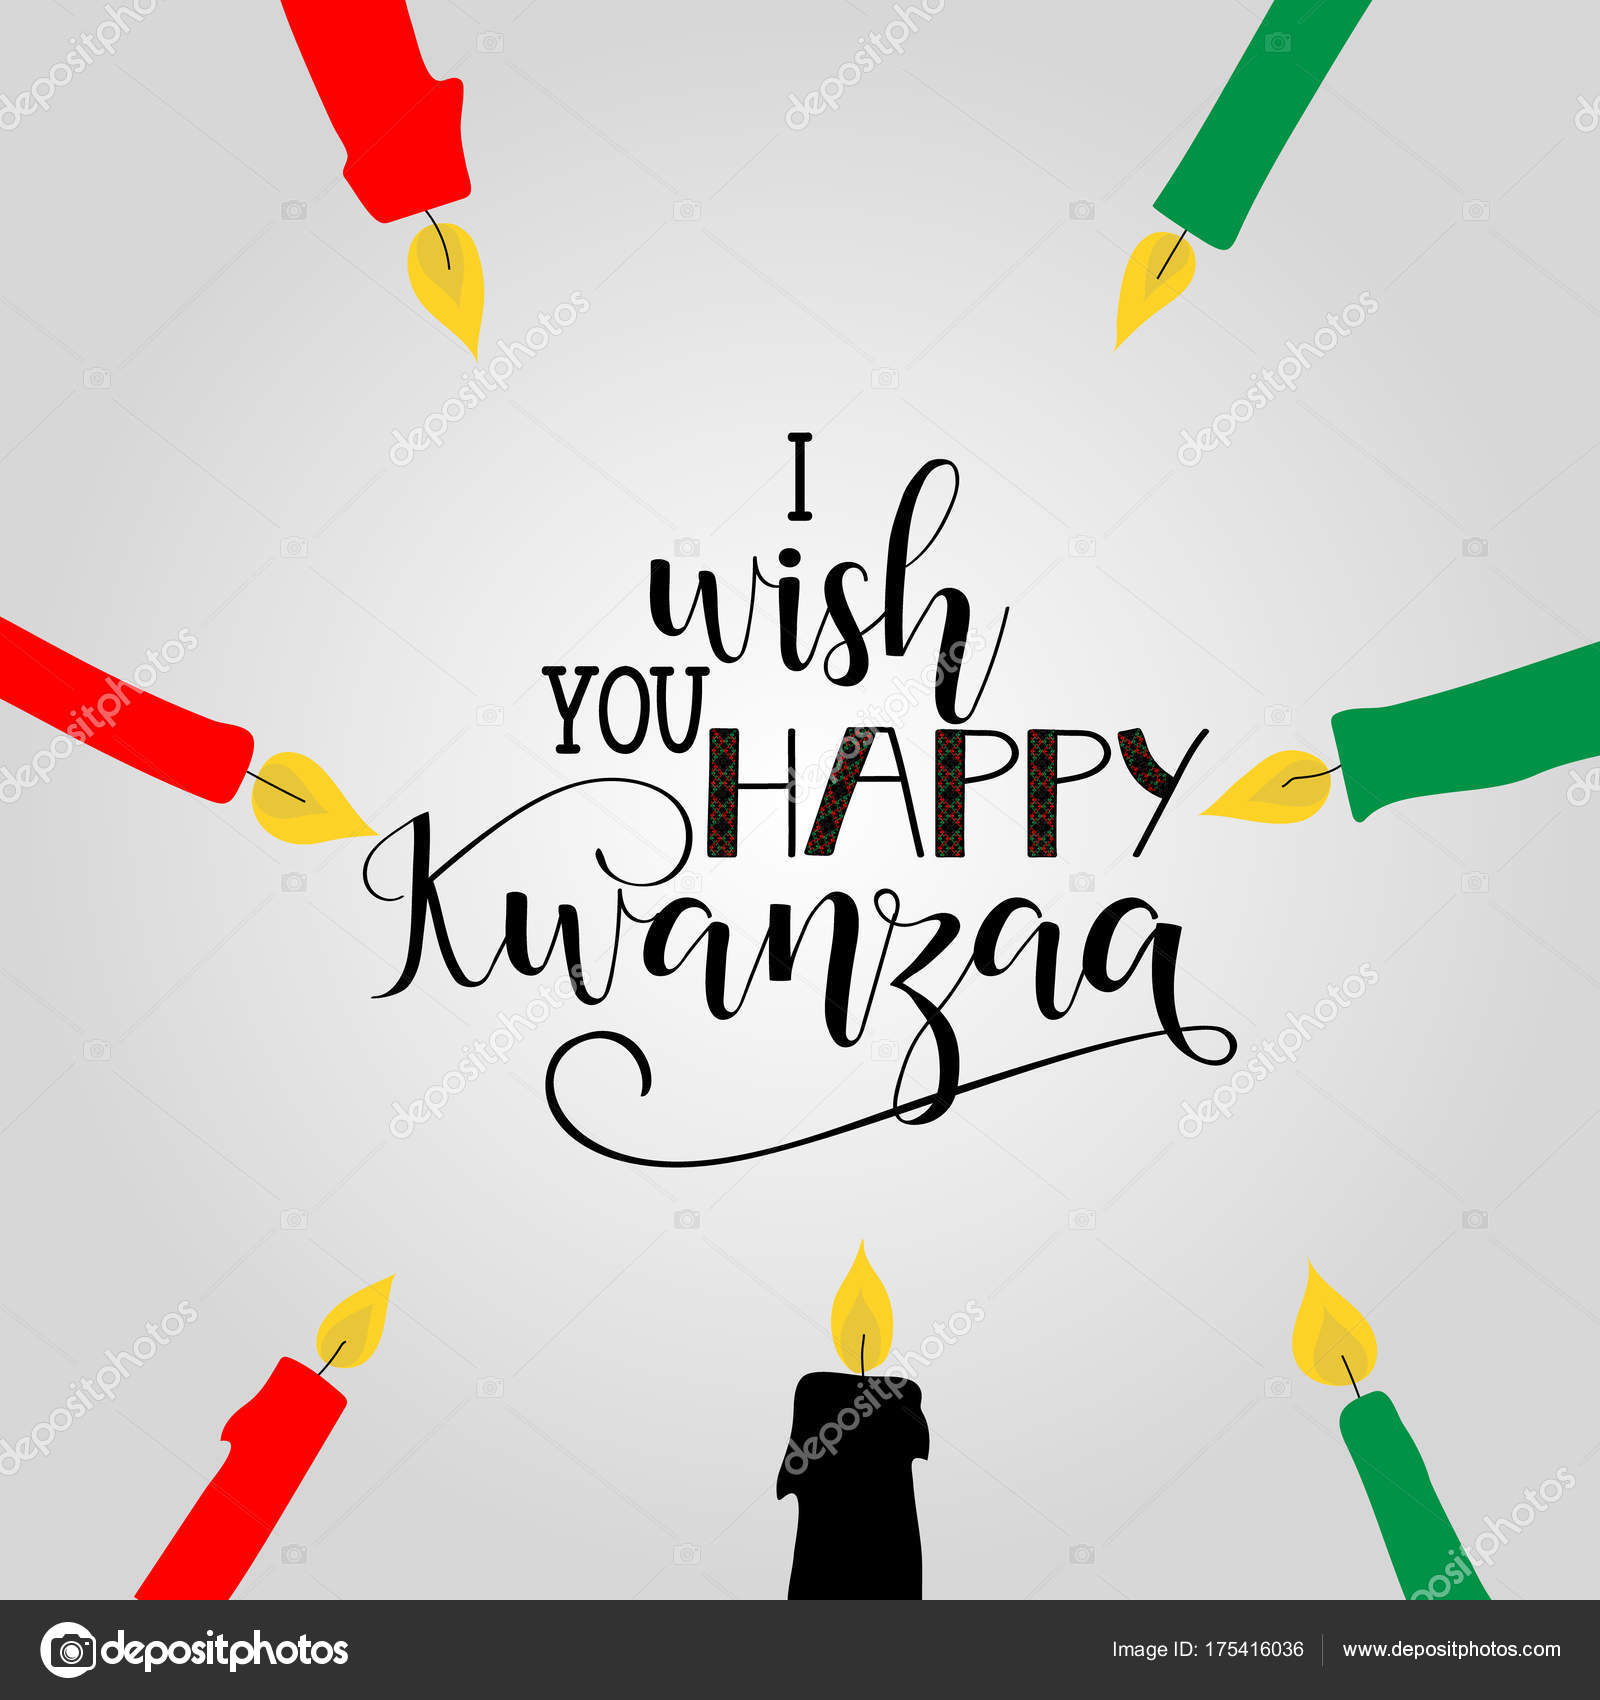 Happy Kwanzaa Decorative Greeting Card Celebration Honors African